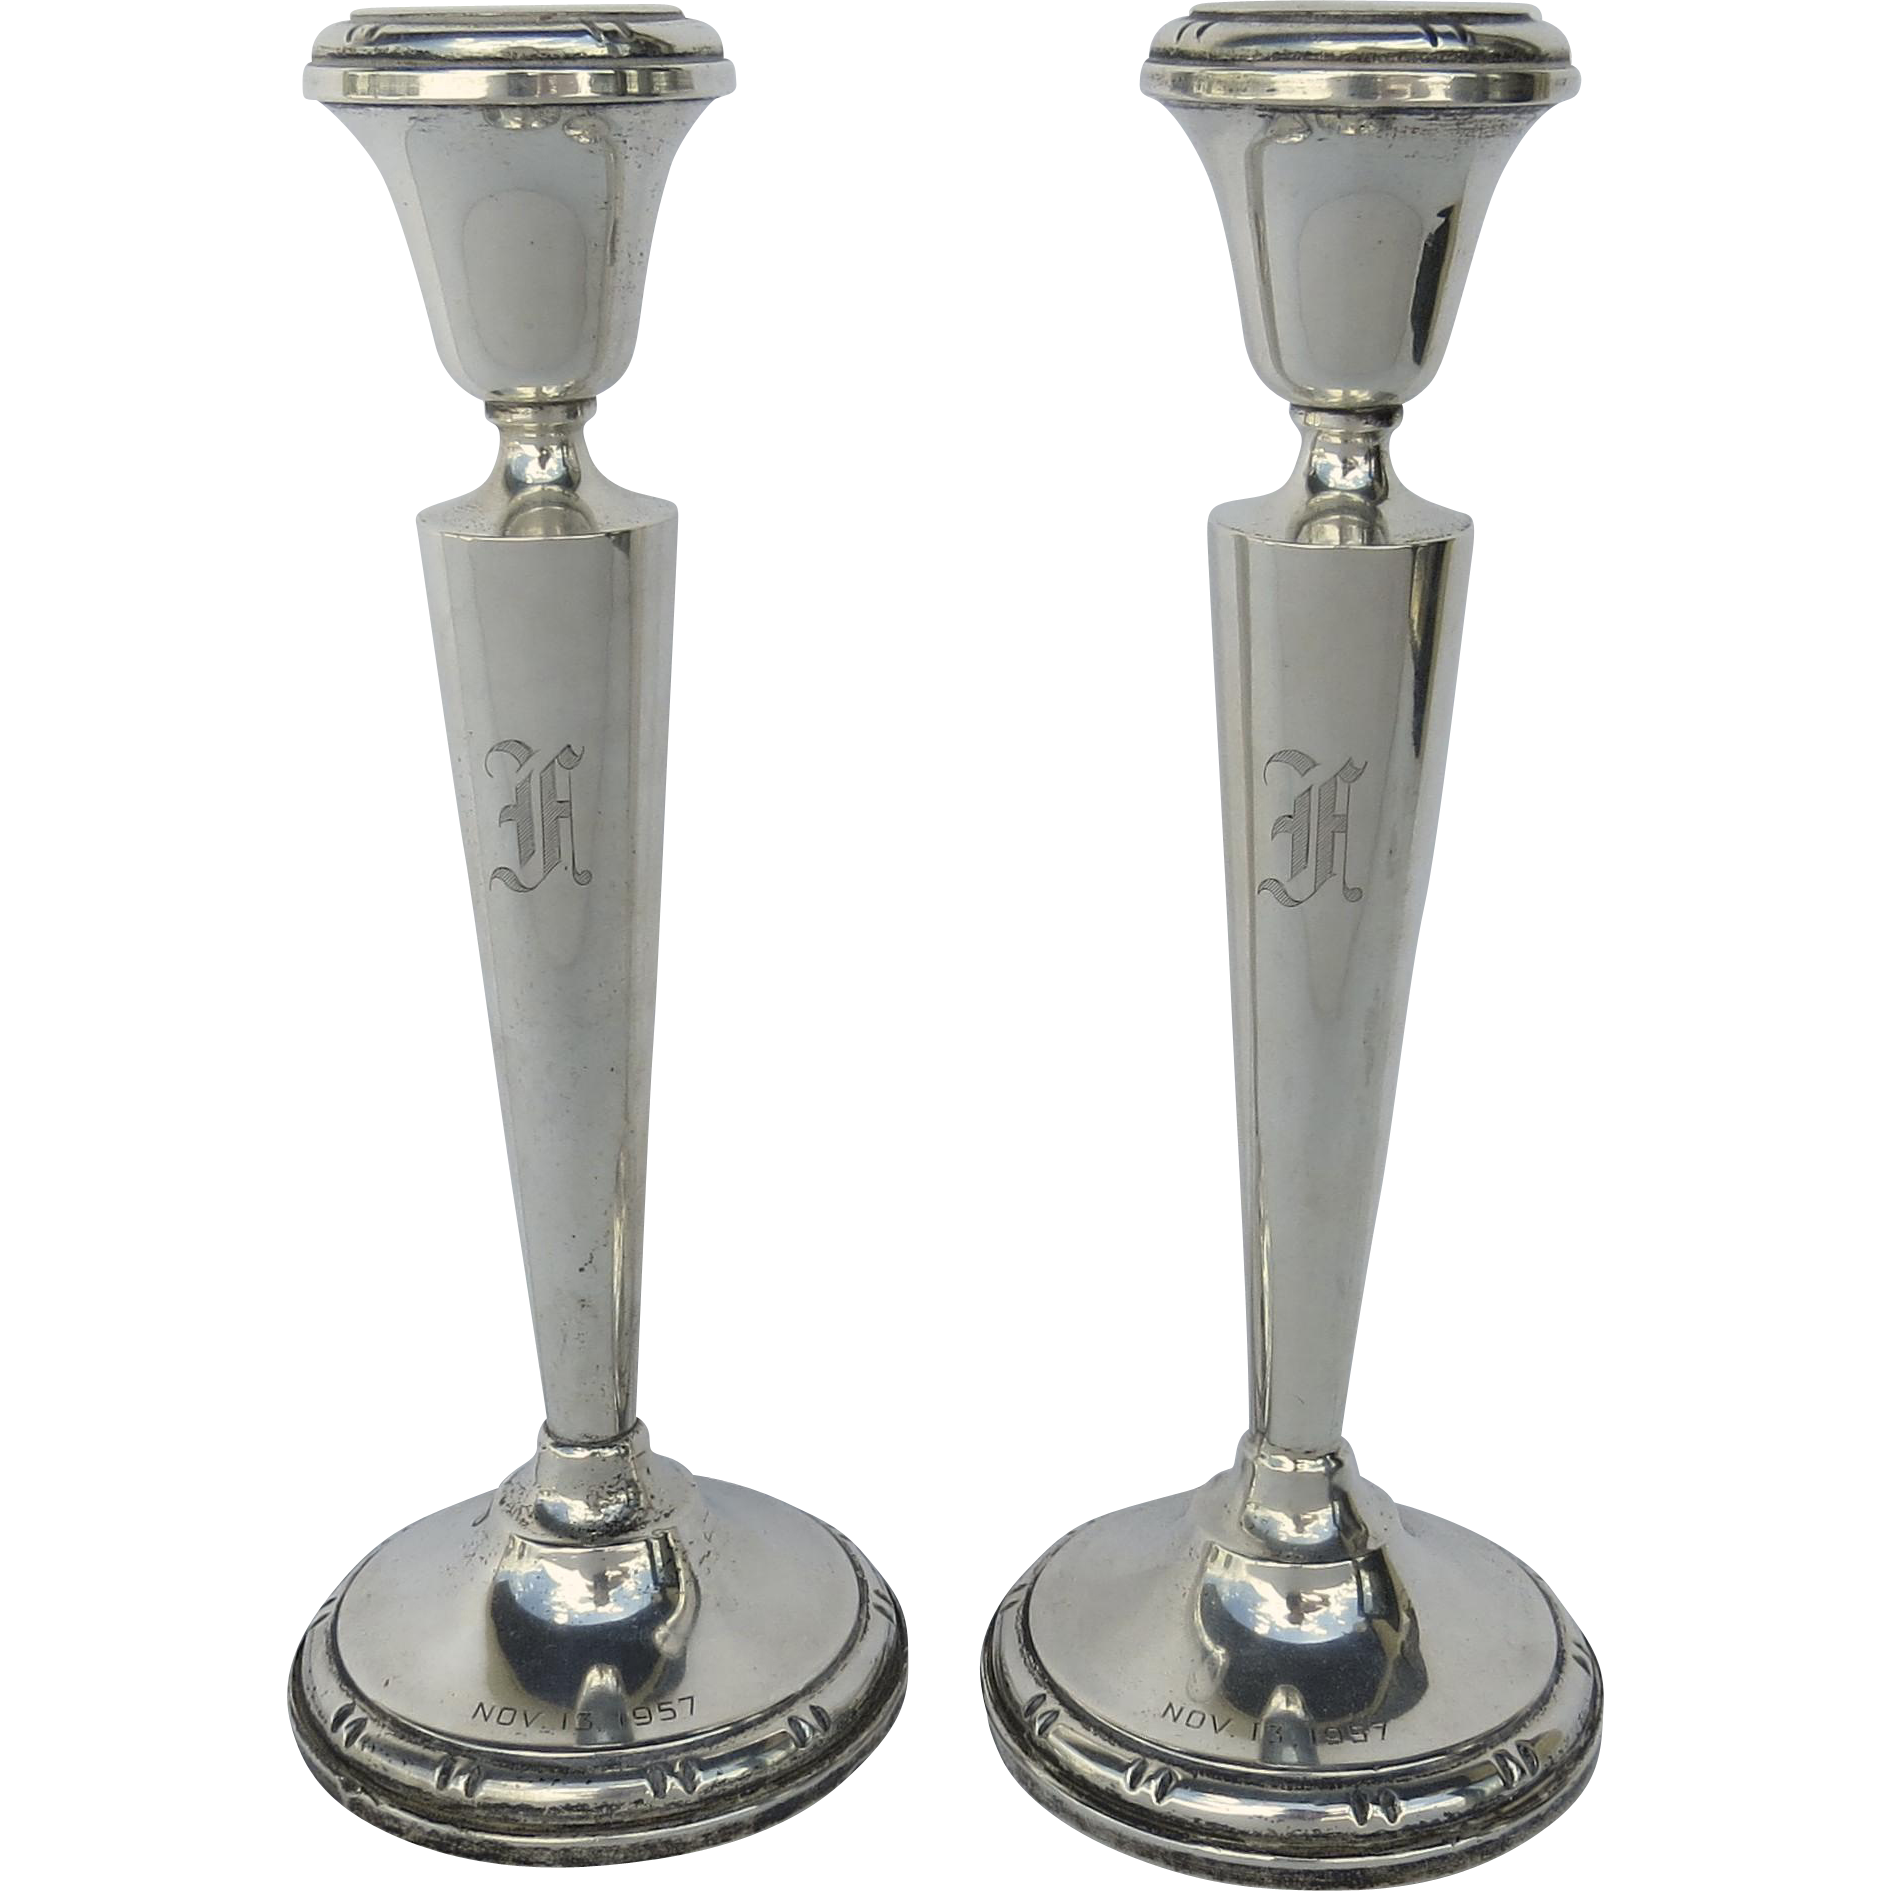 b m baldwin miller sterling silver bamboo pattern candlestick from blacktulip on ruby lane